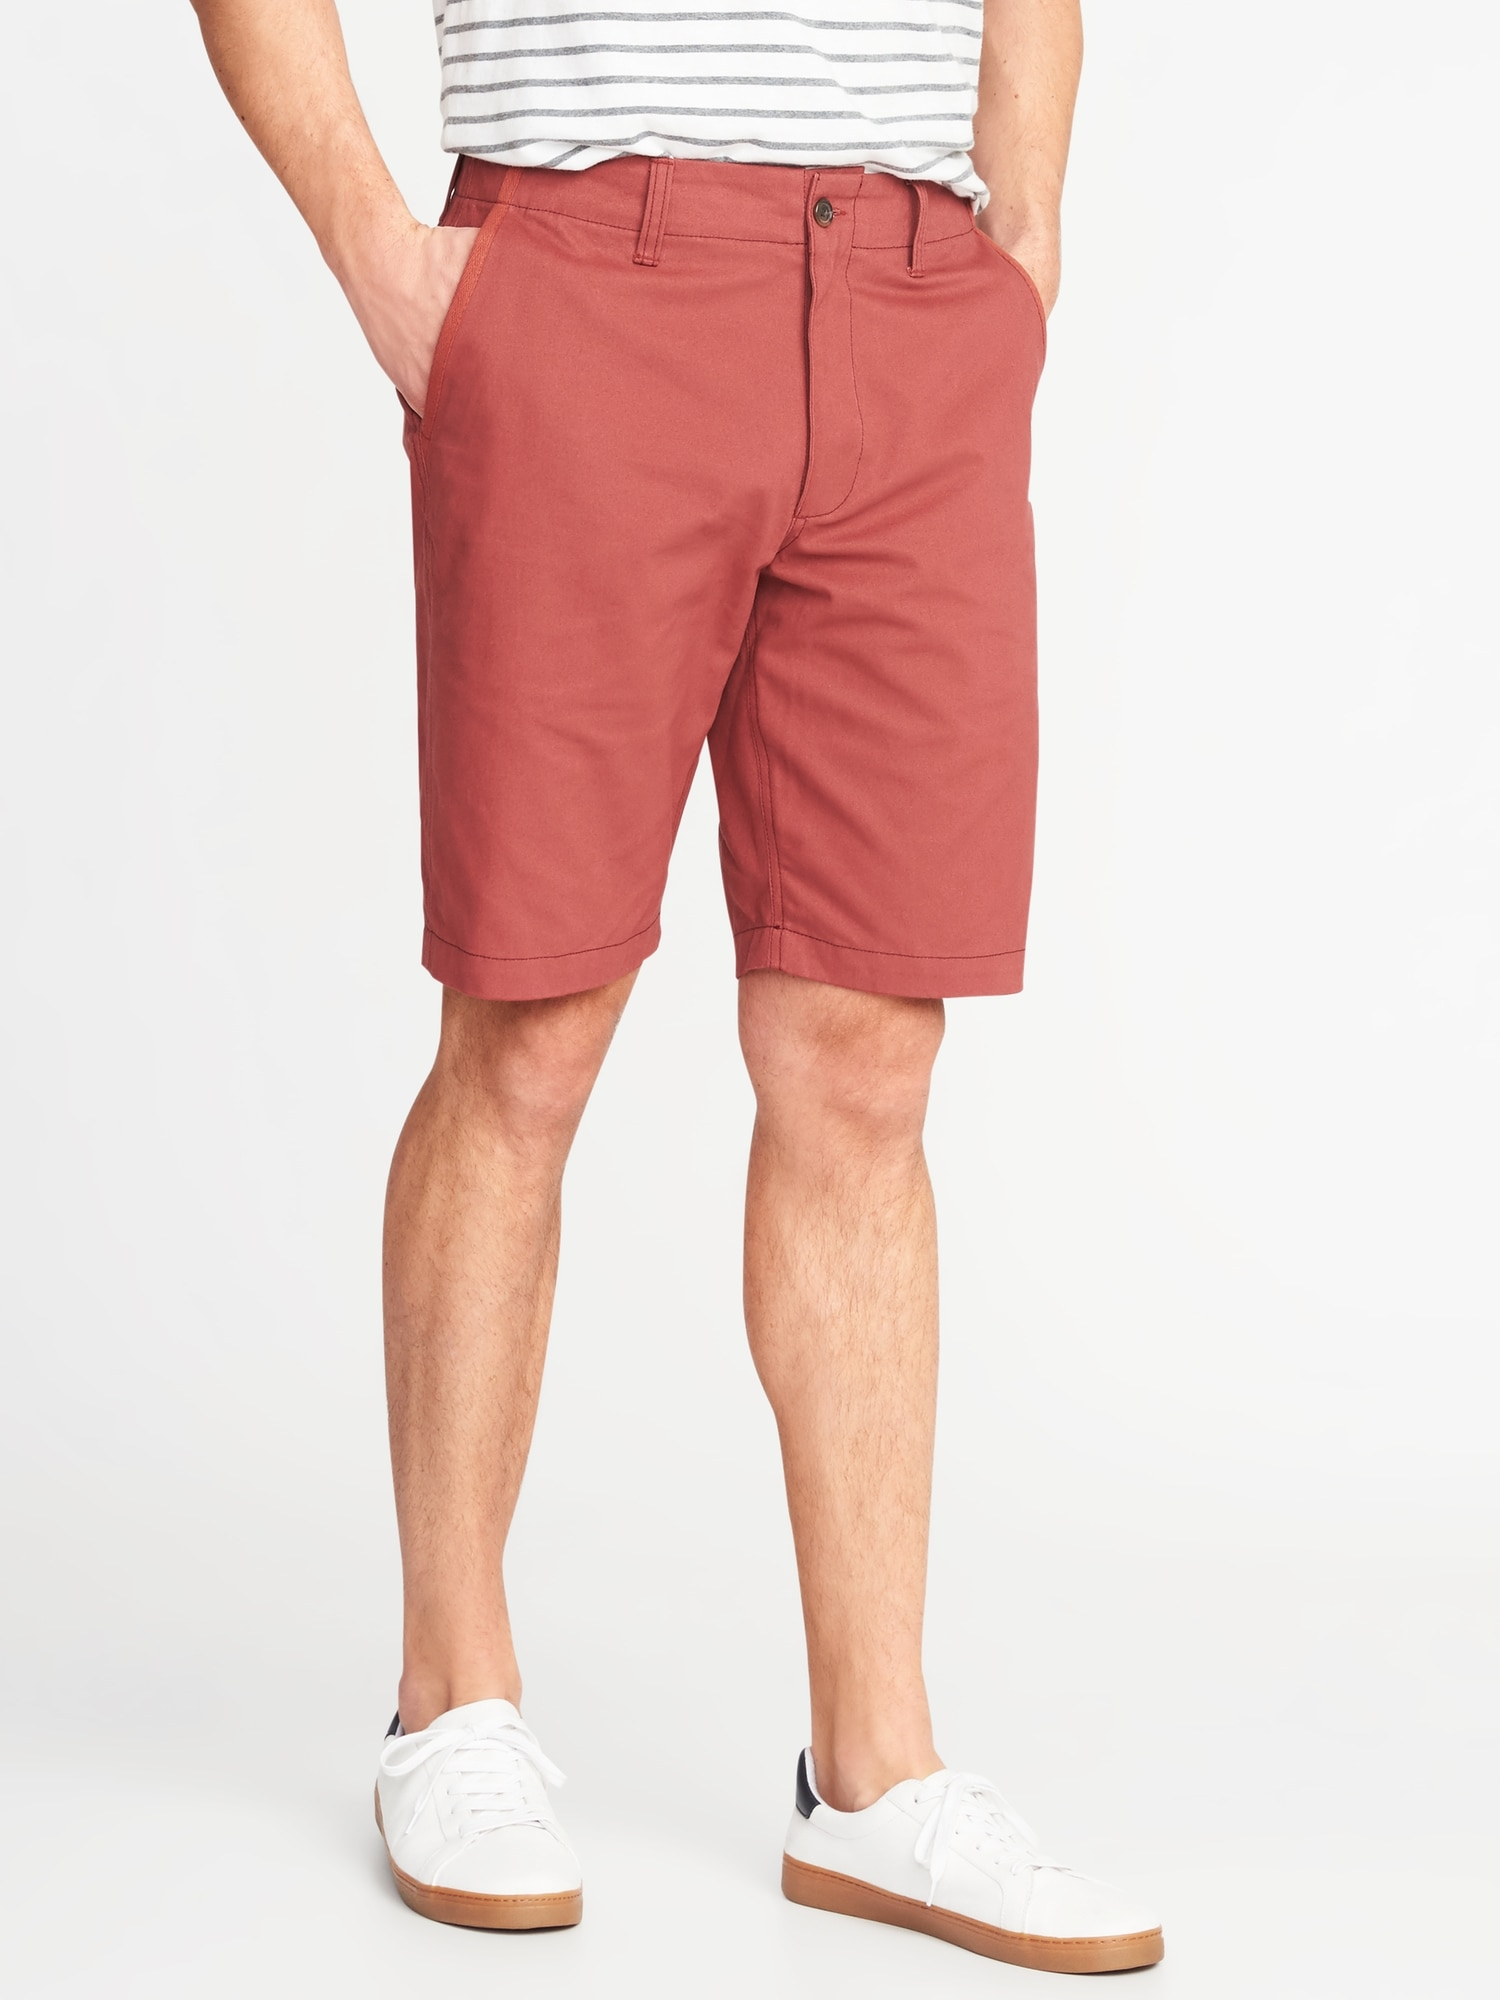 616eec23e52 Lived-In Khaki Shorts for Men - 10-inch inseam